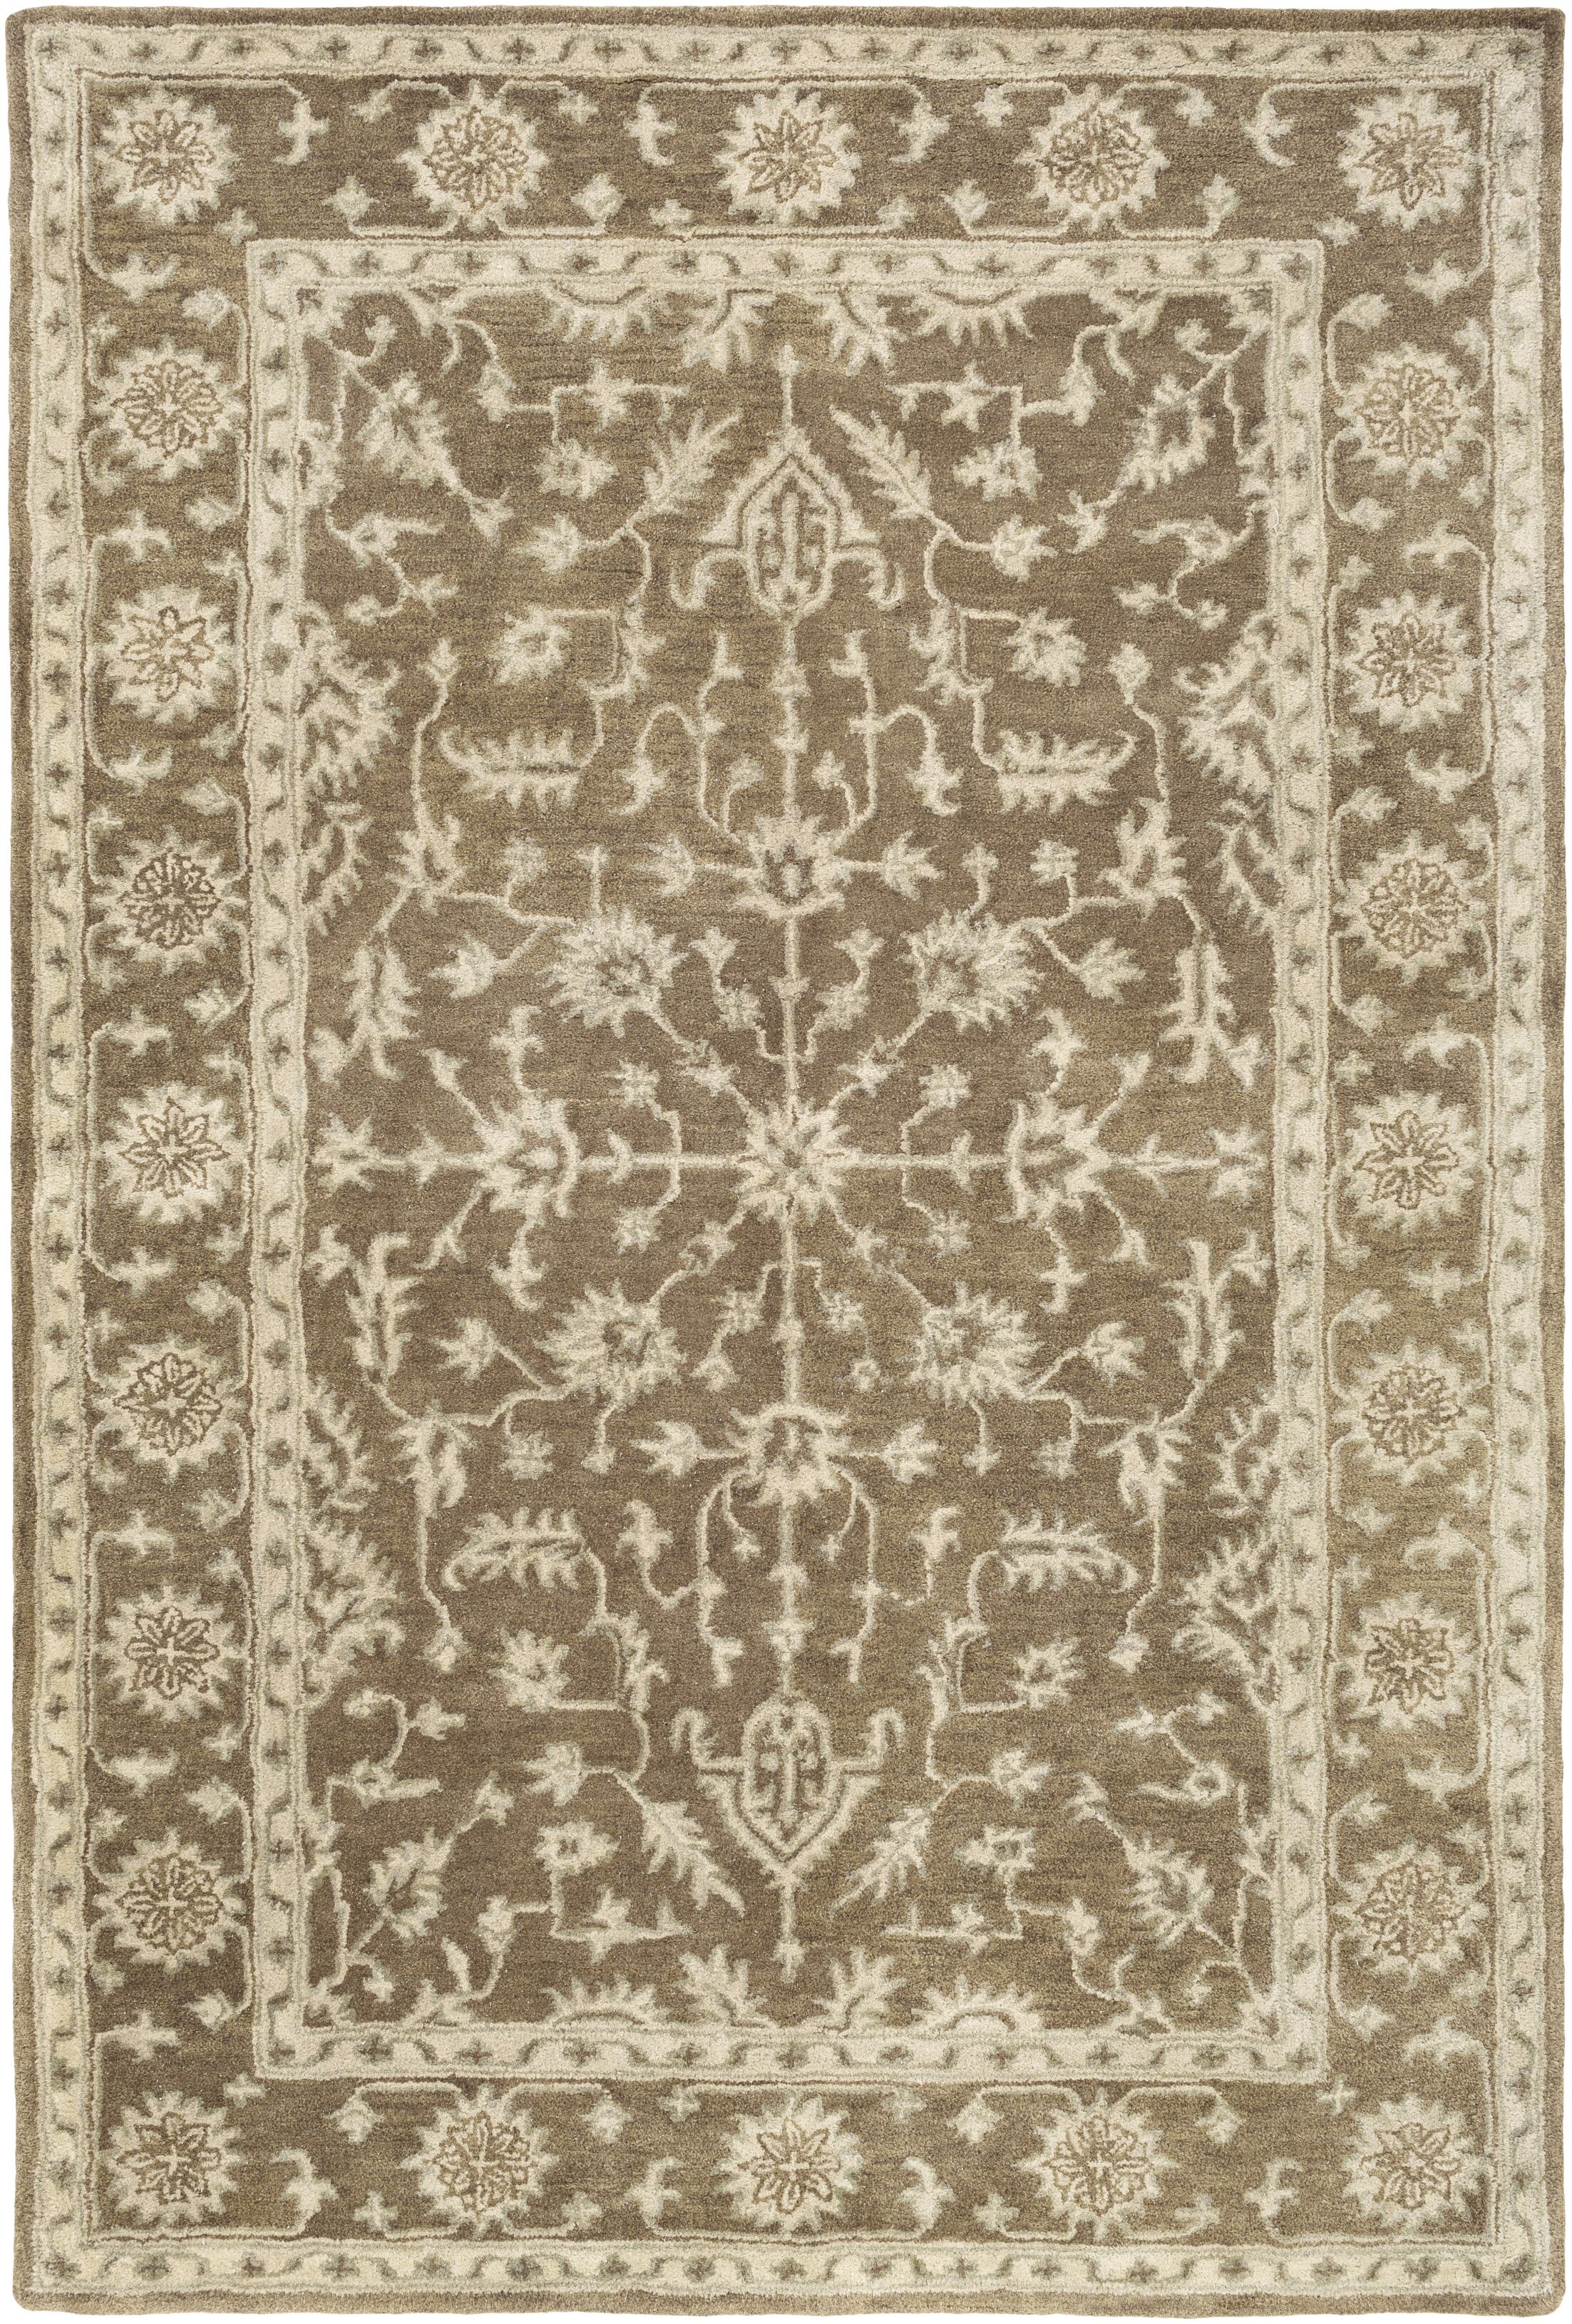 Fulham Hand-Tufted Dark Brown/Khaki Area Rug Rug Size: Rectangle 5' x 7'6